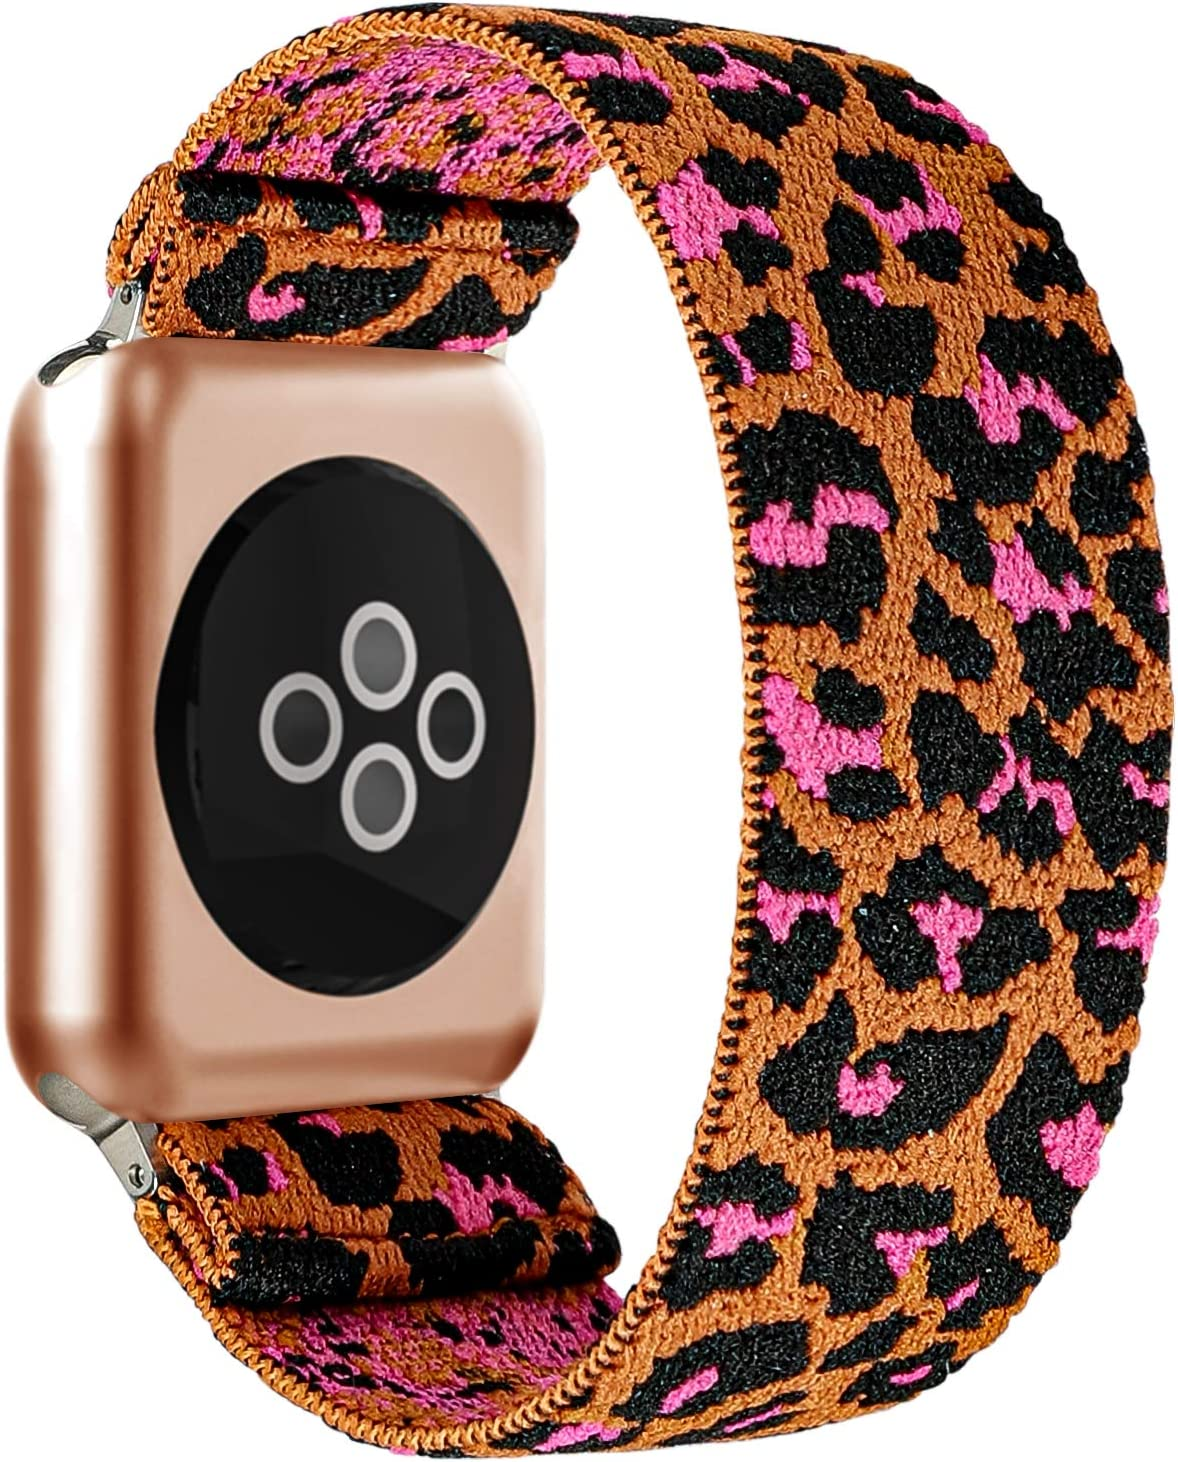 BMBEAR Stretchy Strap Loop Compatible with Apple Watch Band 38mm 40mm iWatch Series 6/5/4/3/2/1 Brown Leopard